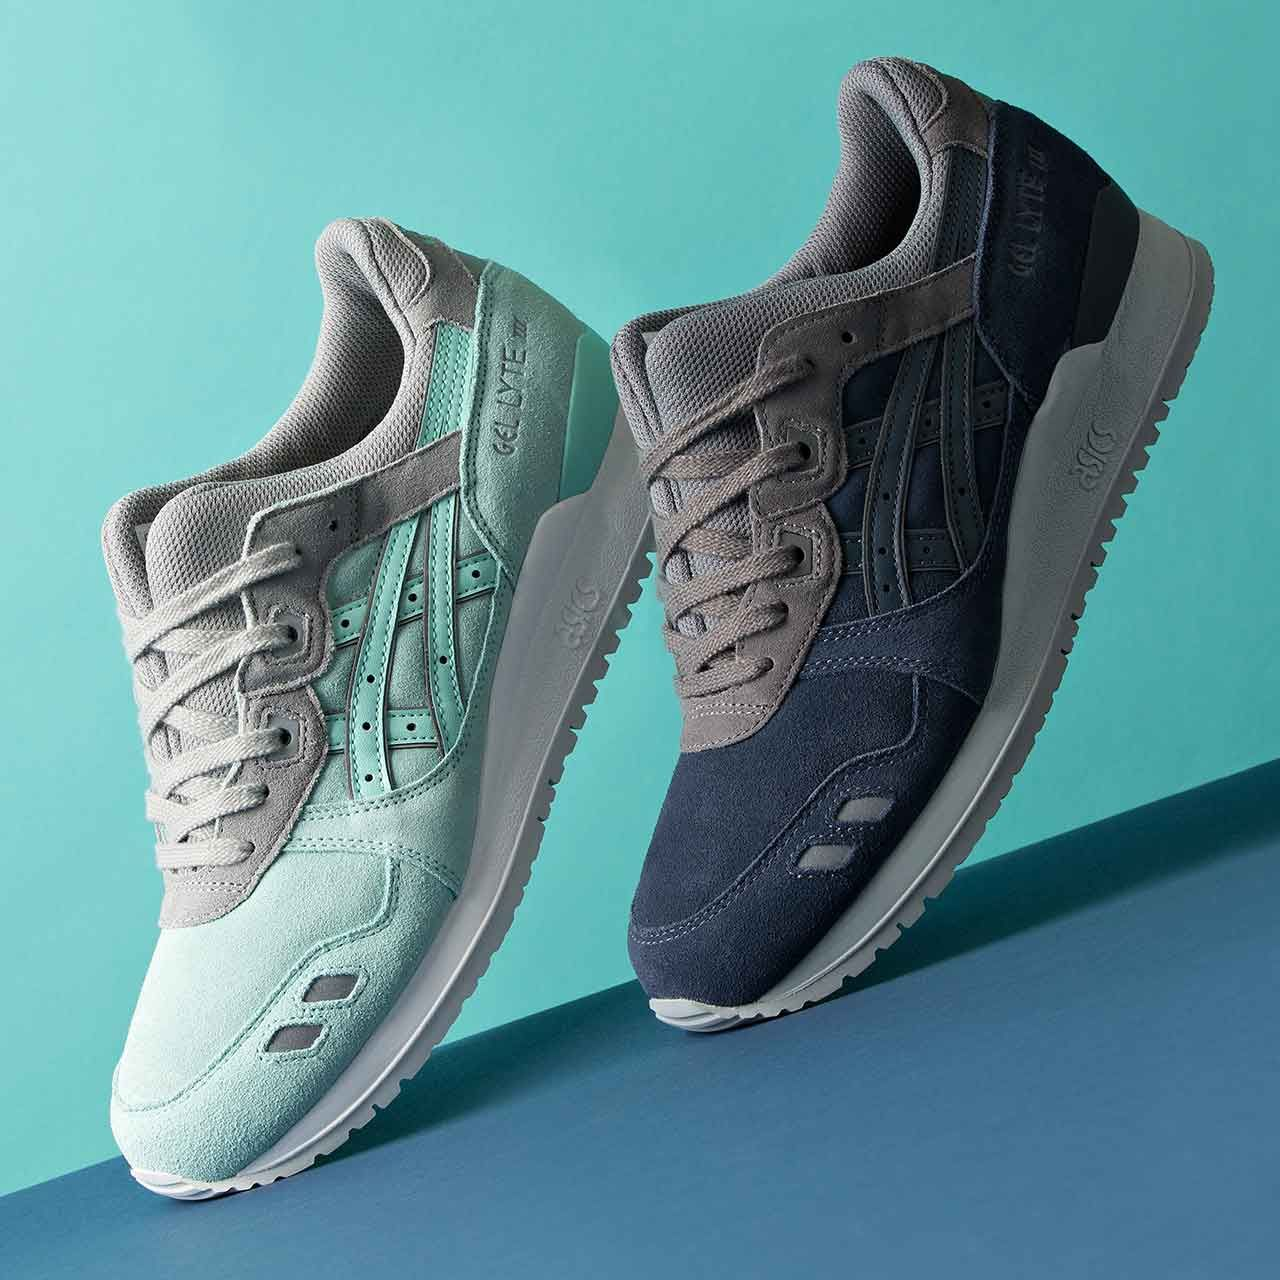 Related pictures split tongue jpg pictures to pin on pinterest - Featuring The Classic Split Tongue The Asics Gel Lyte Iii Trainer Is Available In